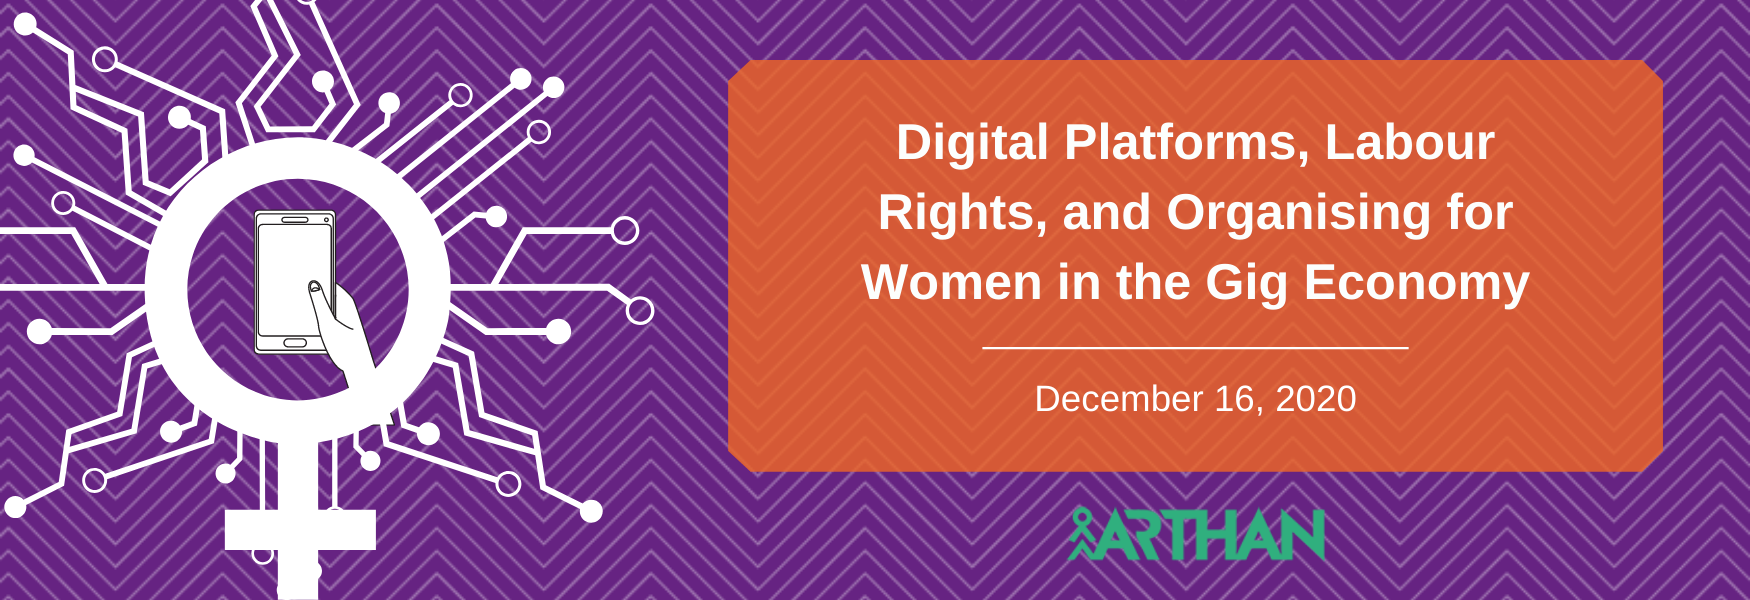 Digital Platforms, Labour Rights, and Organising for Women in the Gig Economy